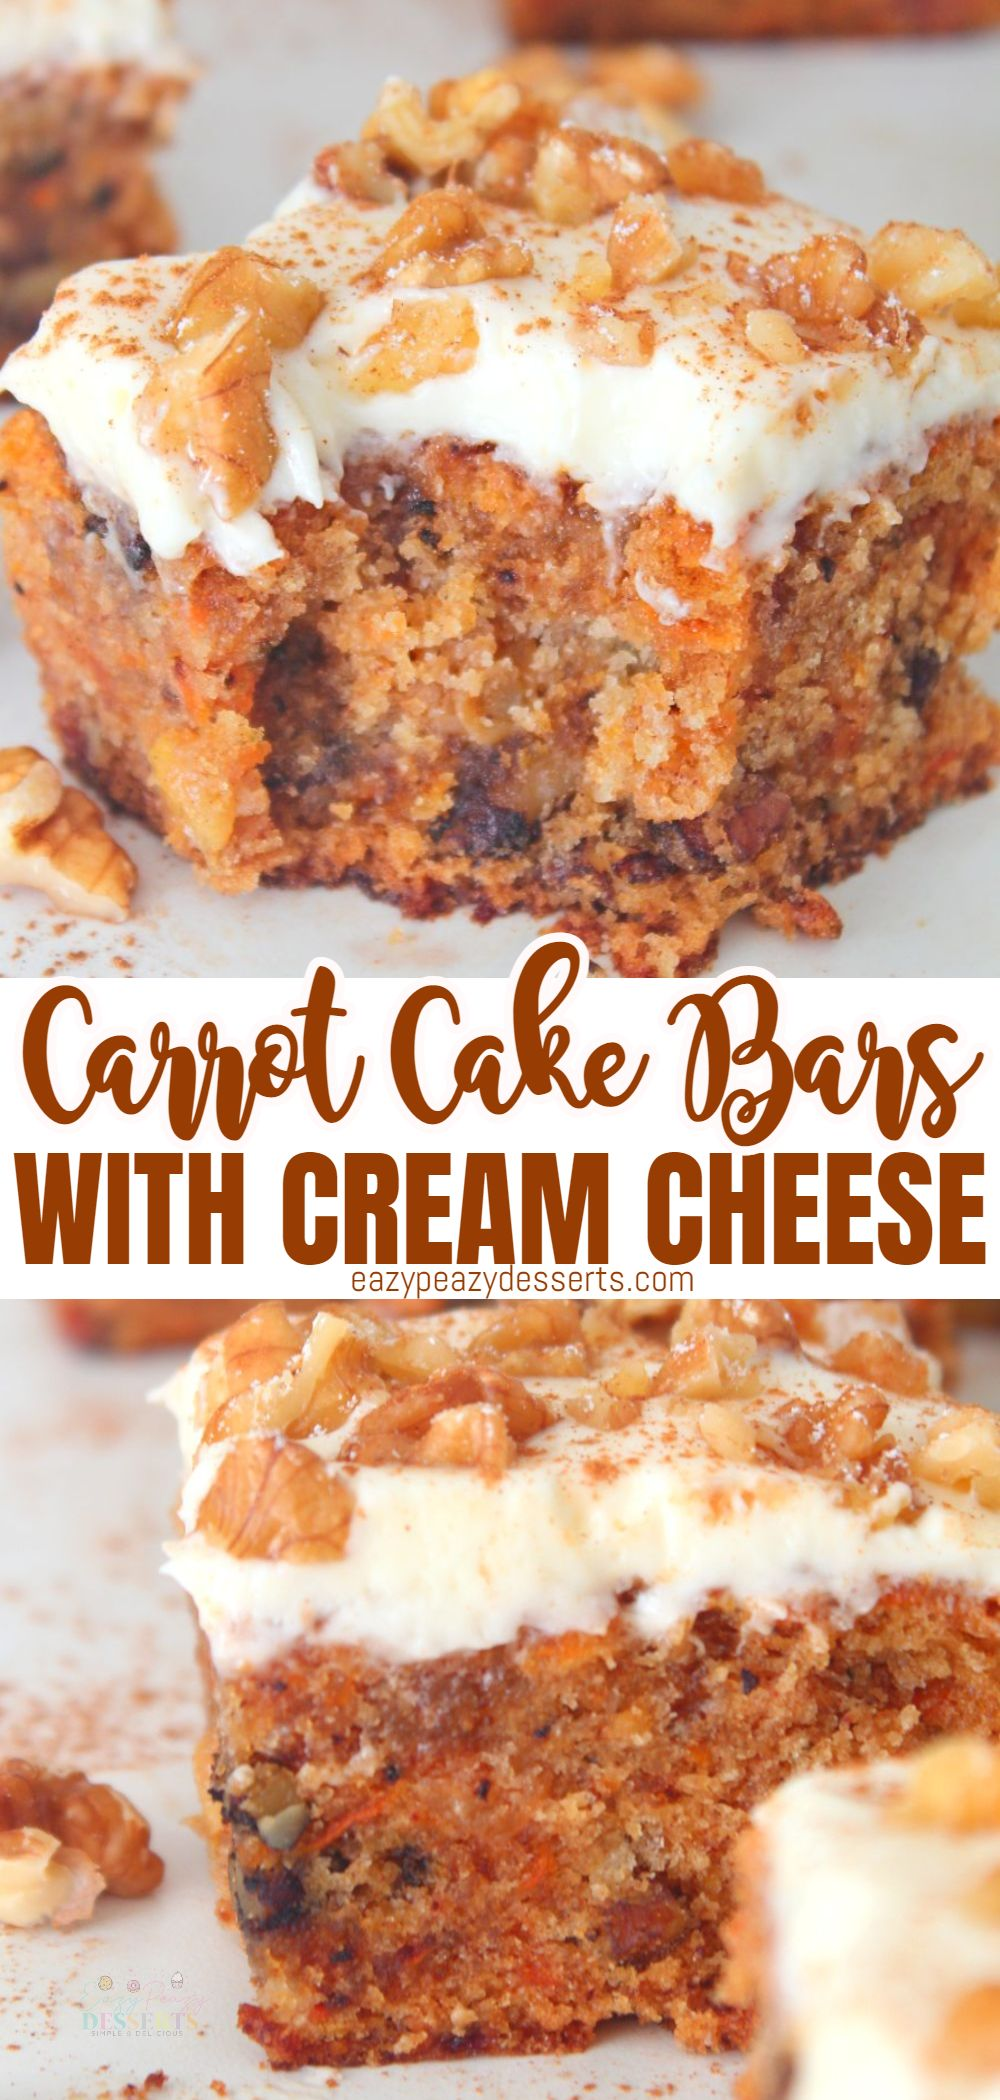 The next time you have a craving for carrot cake but don't want to put in the time of making a full cake, try these easy carrot cake bars instead. via @eazypeazydesserts